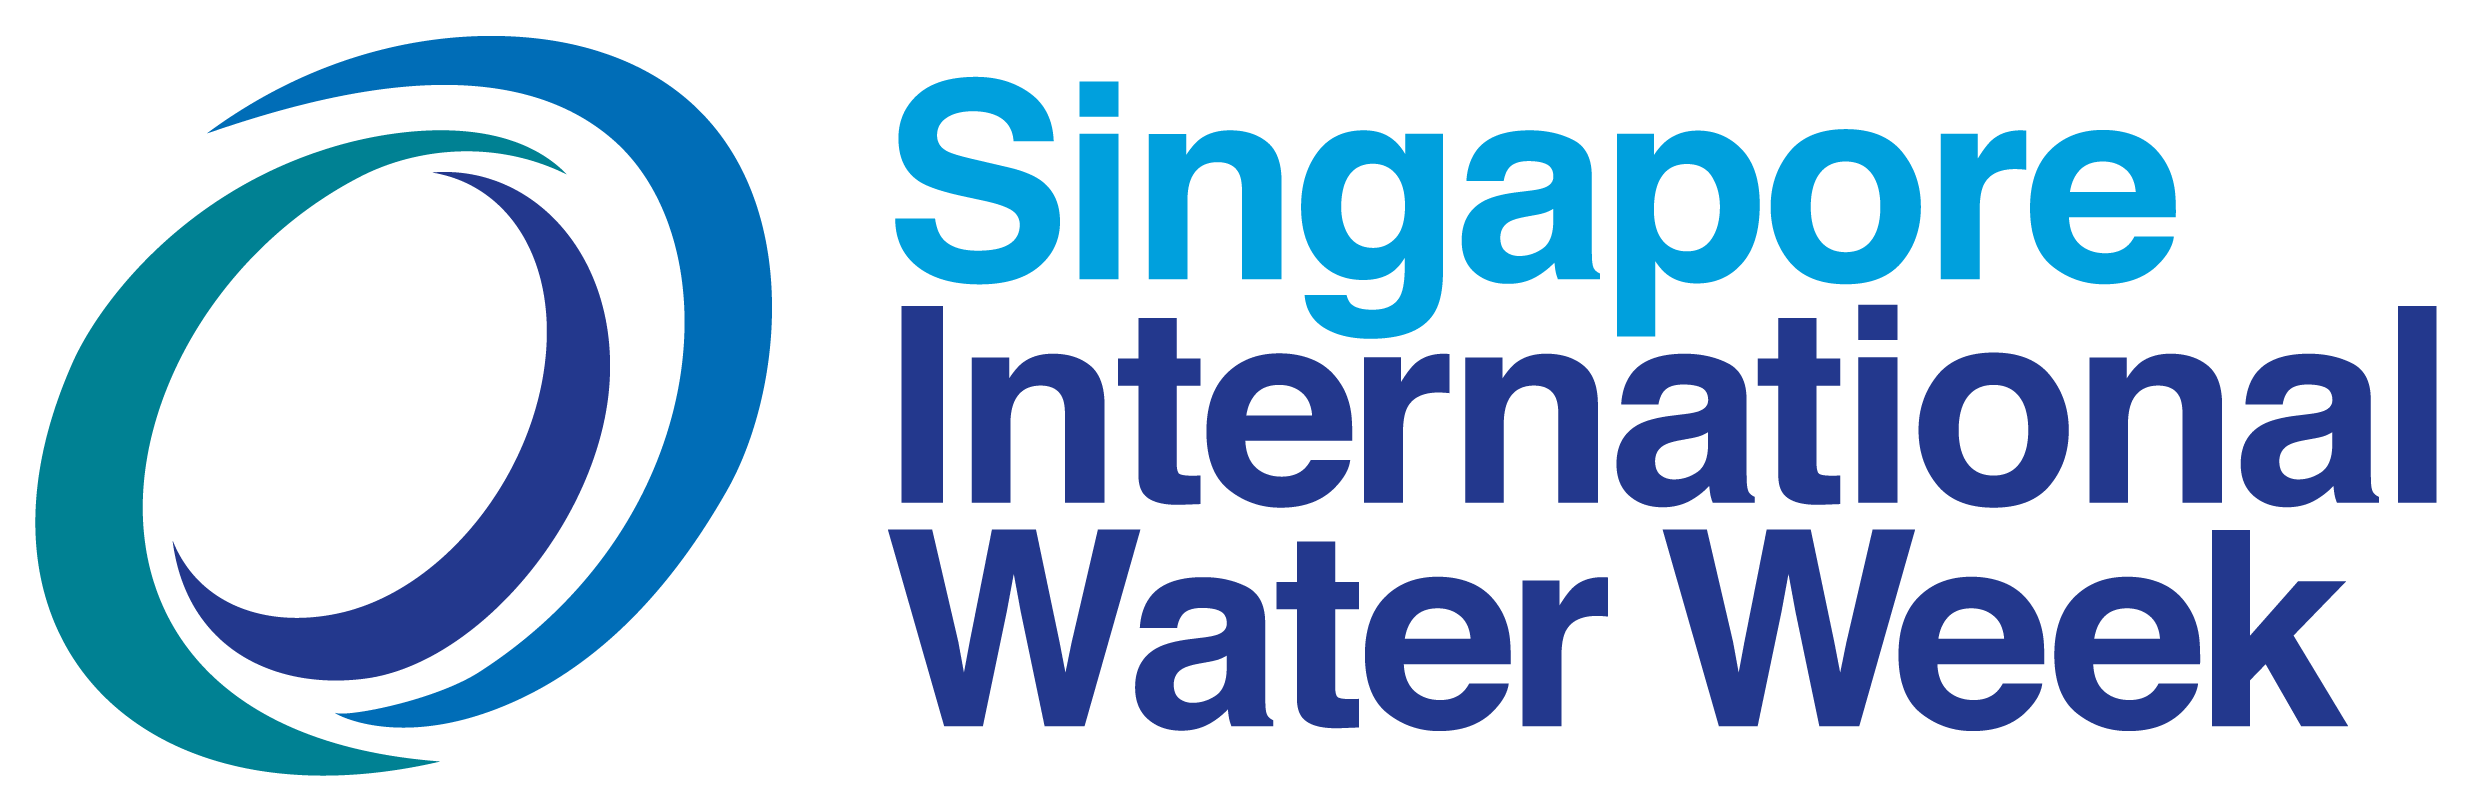 Singapore international Water Week Logo